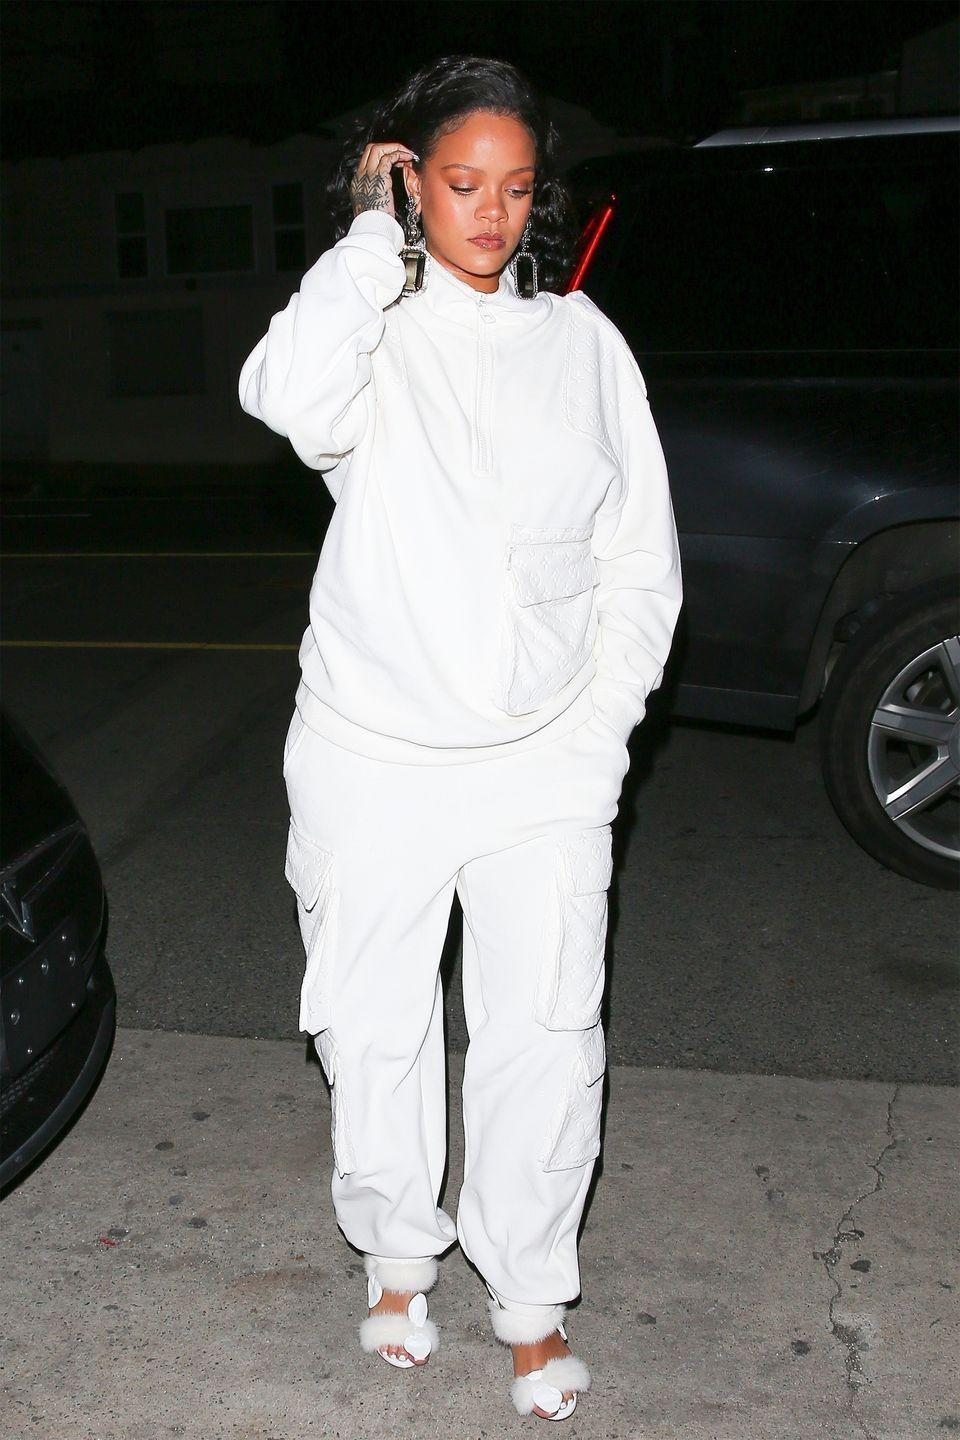 "<p>For dinner in LA, Rihanna dons a winter white Louis Vuitton sweatsuit with a custom-made pair of tonal Olgana Paris Celeste Mink Sandal. </p><p><a class=""link rapid-noclick-resp"" href=""https://fave.co/2WRRCFi"" rel=""nofollow noopener"" target=""_blank"" data-ylk=""slk:SHOP NOW"">SHOP NOW</a></p>"